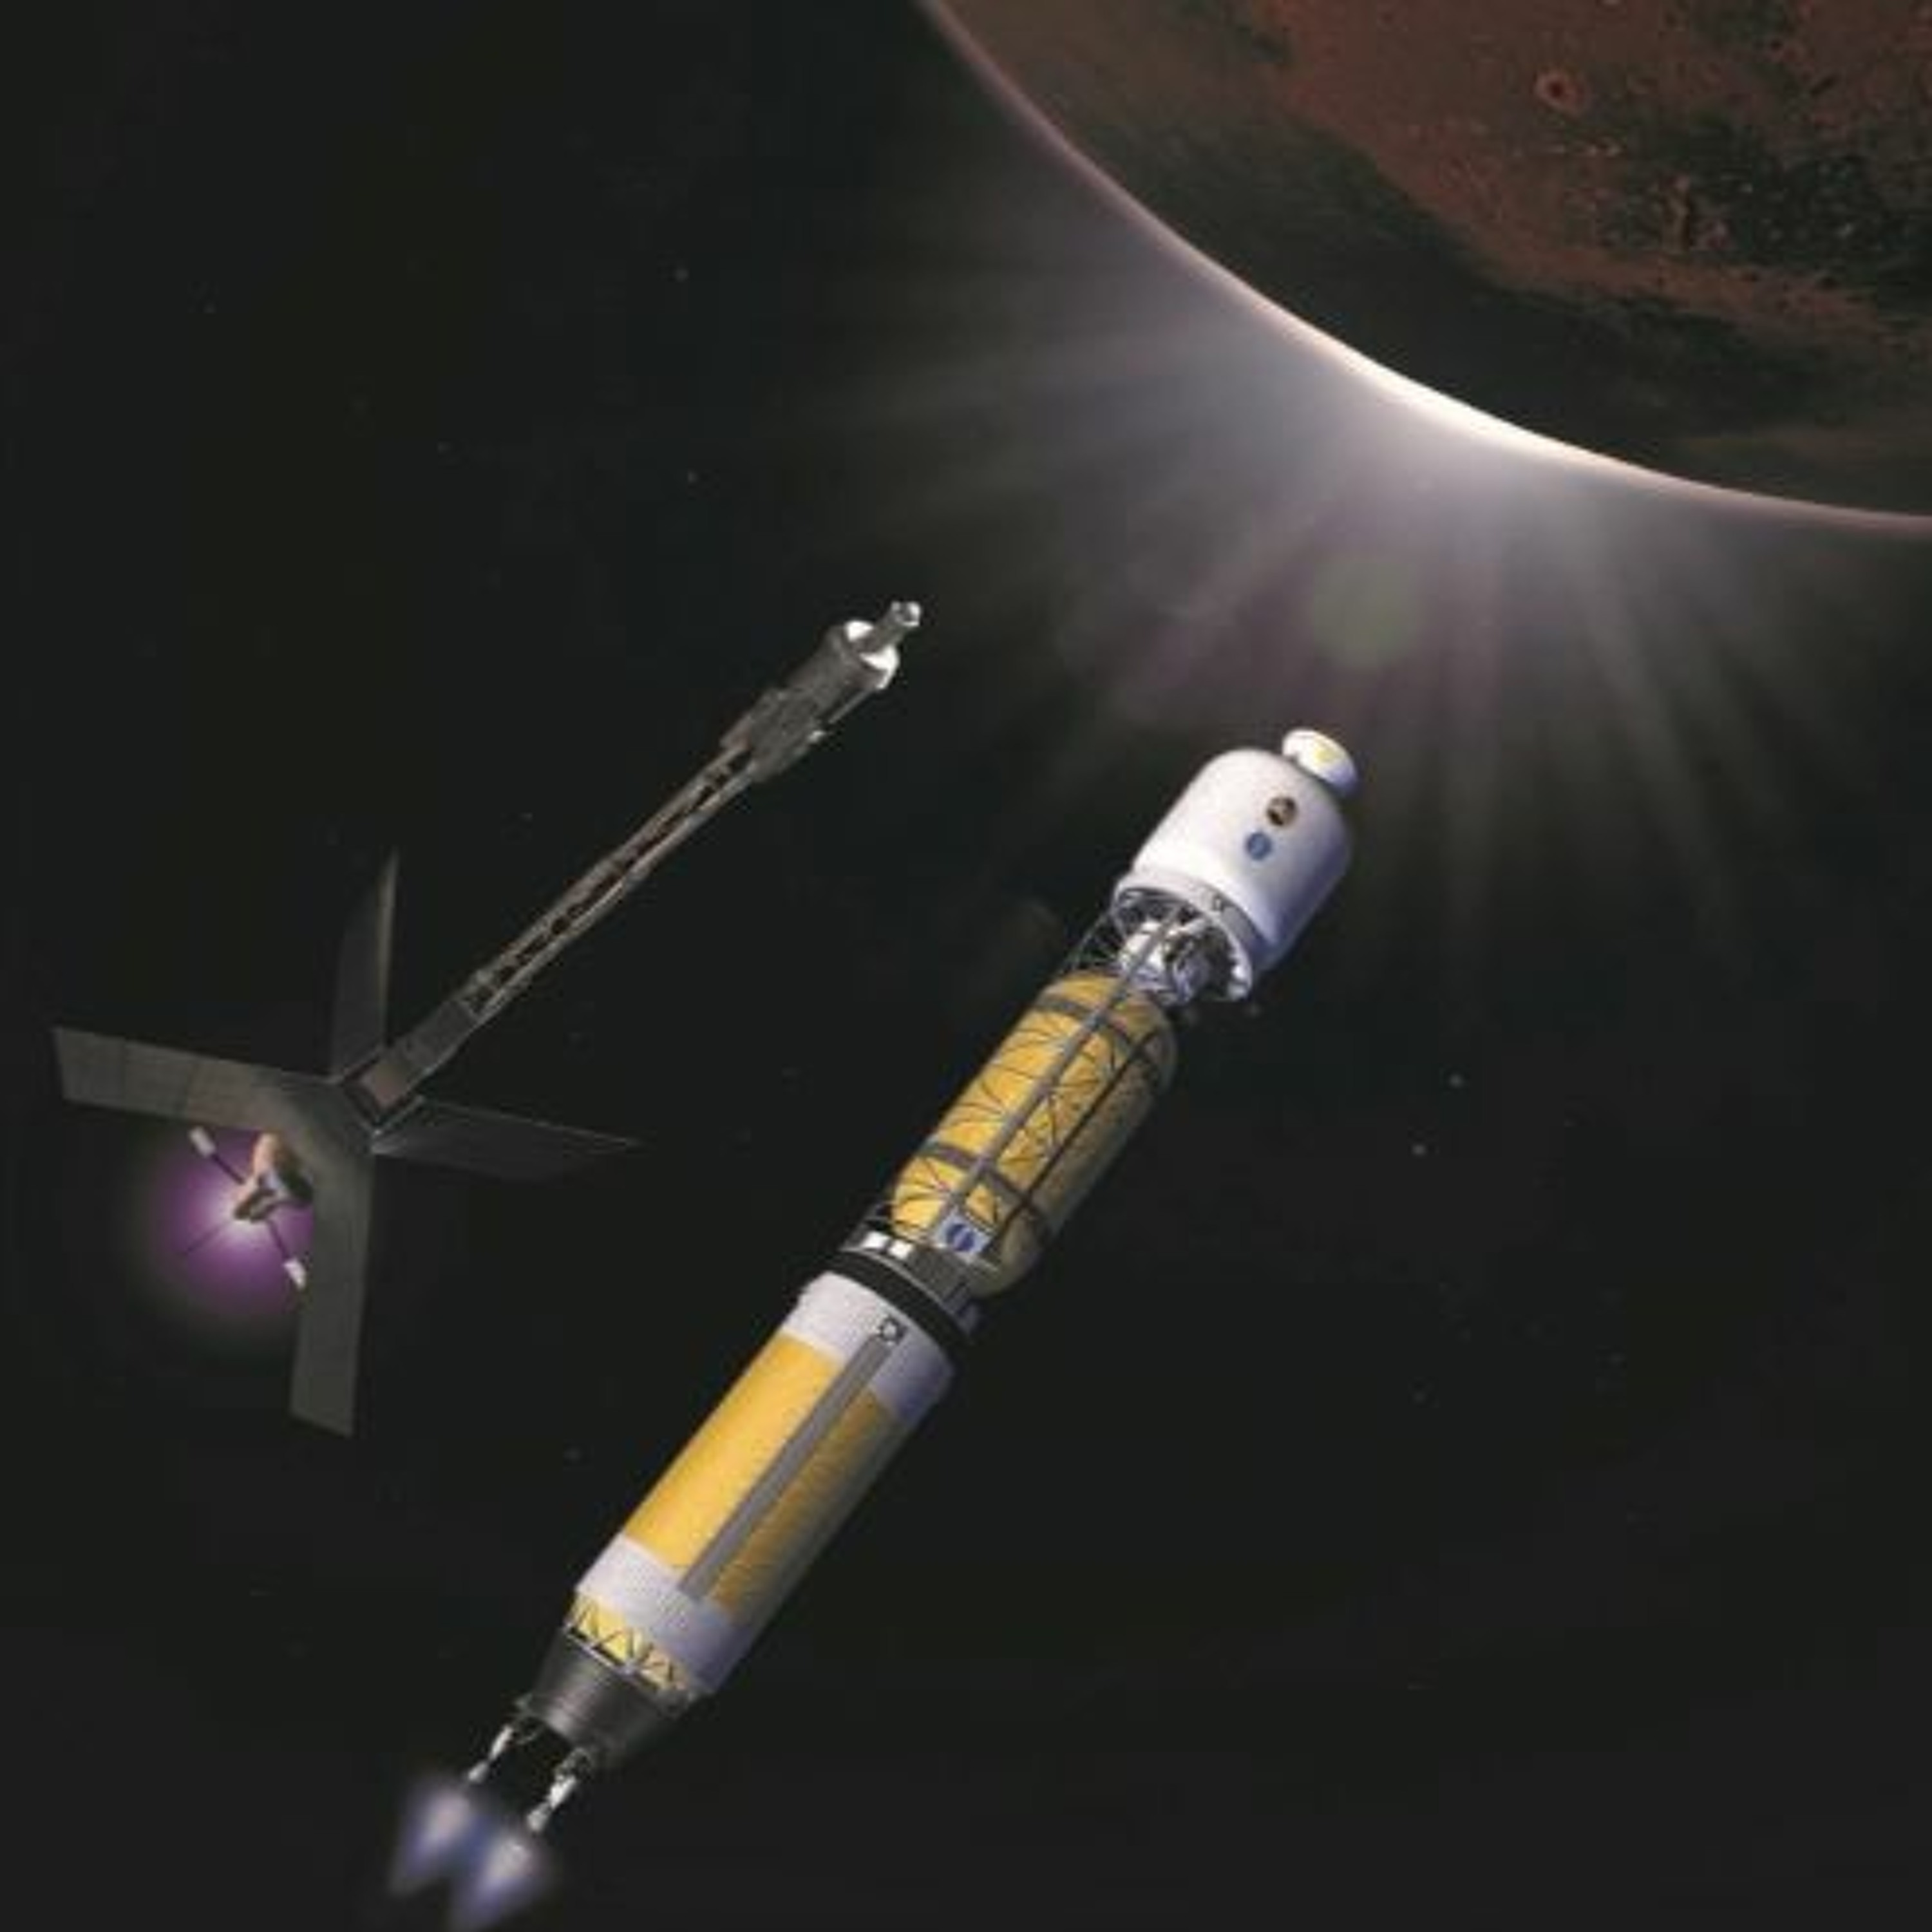 Space Nuclear Propulsion for Human Mars Exploration